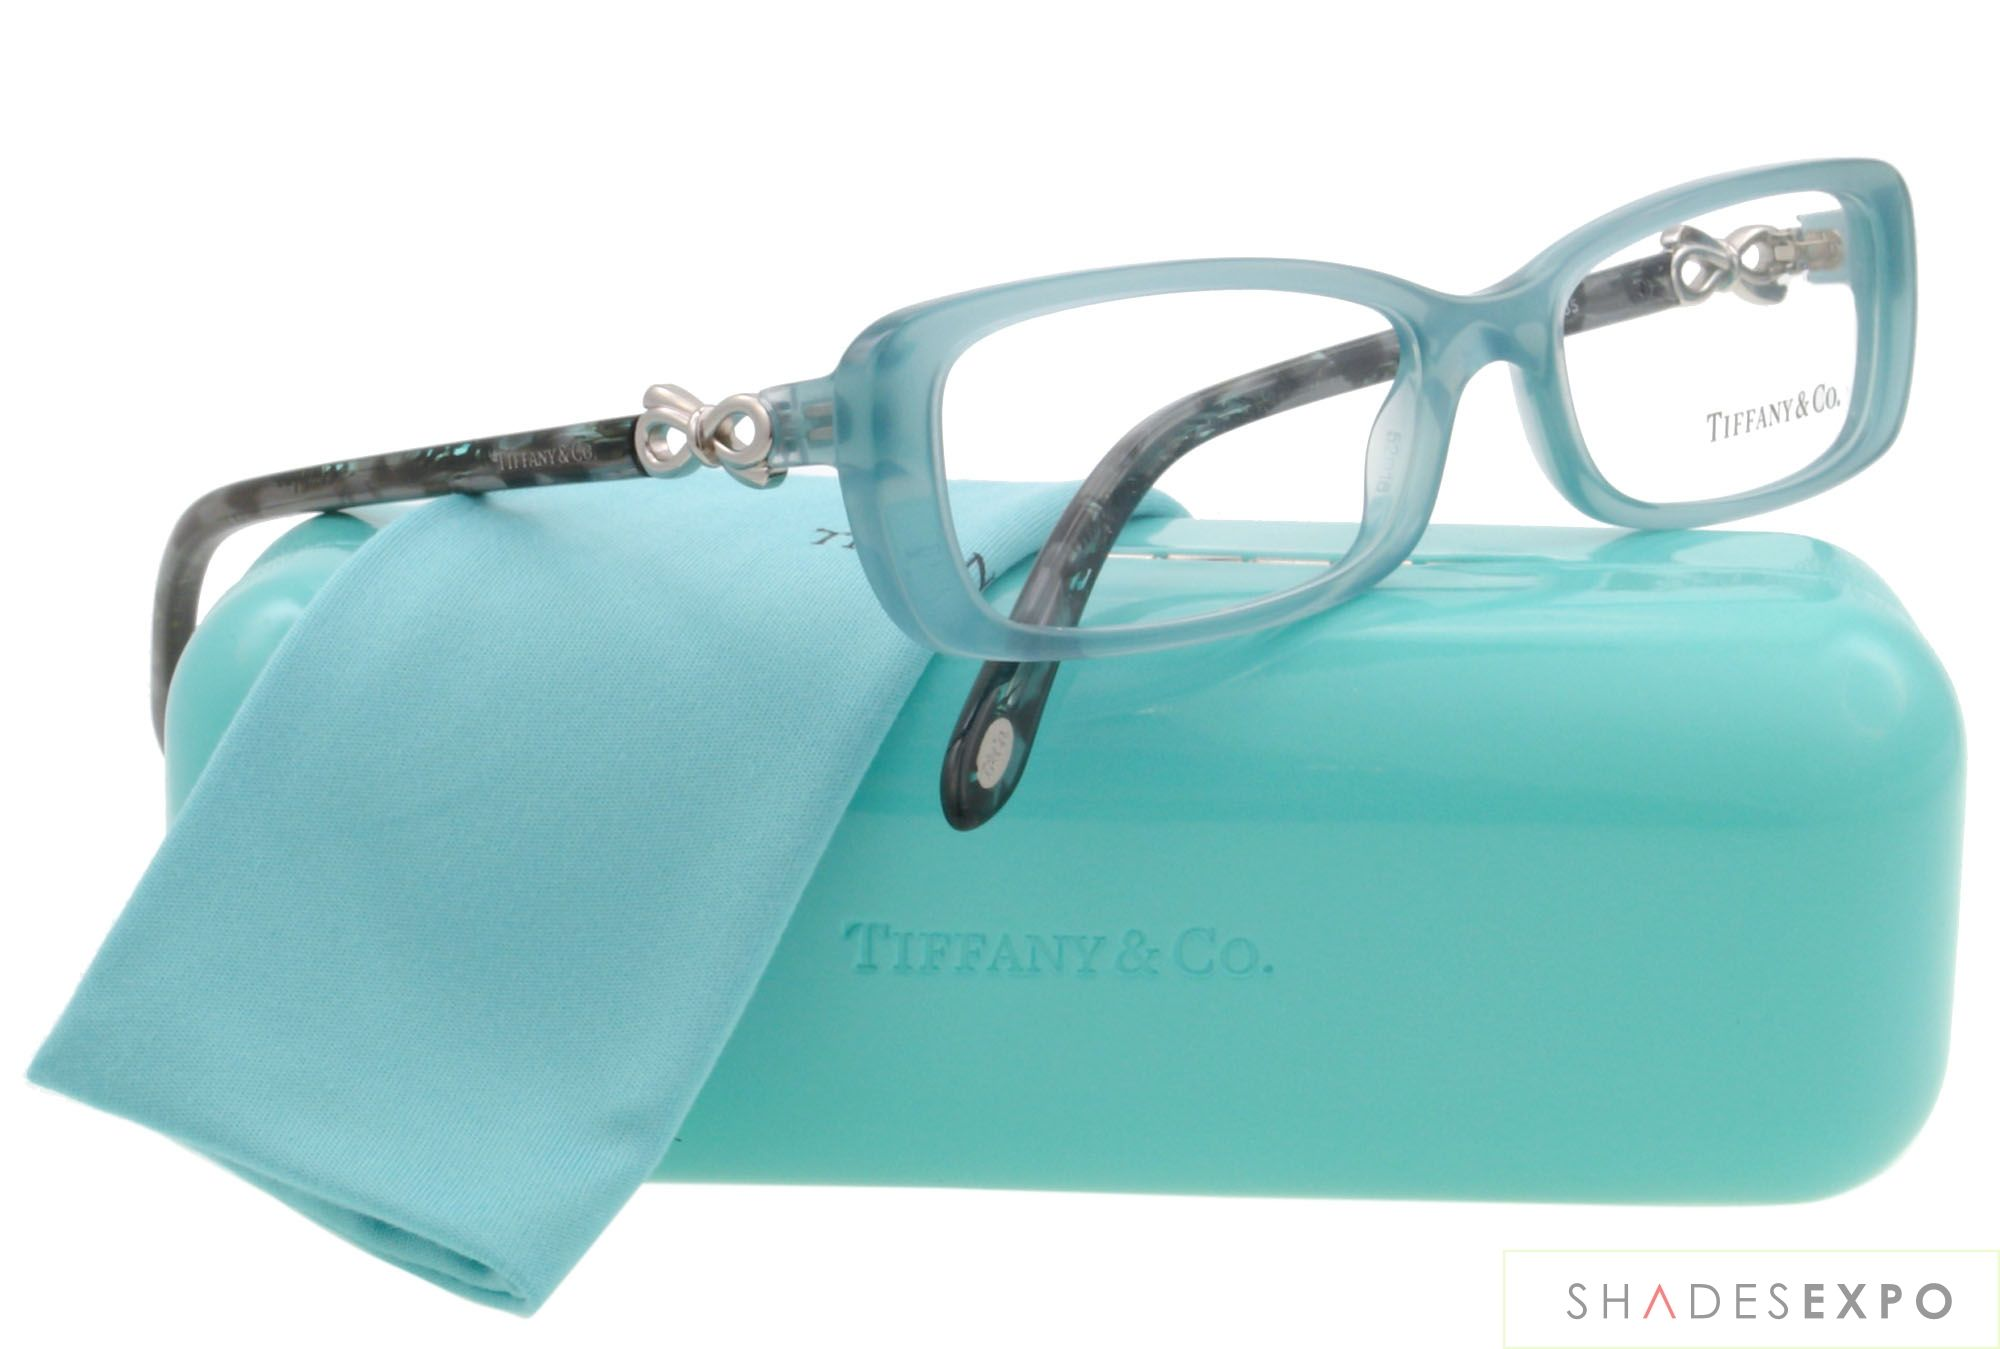 f6ce85e593e NEW Tiffany Eyeglasses TIF 2058 TURQUOISE 8135 TIF2058 AUTHENTIC ...